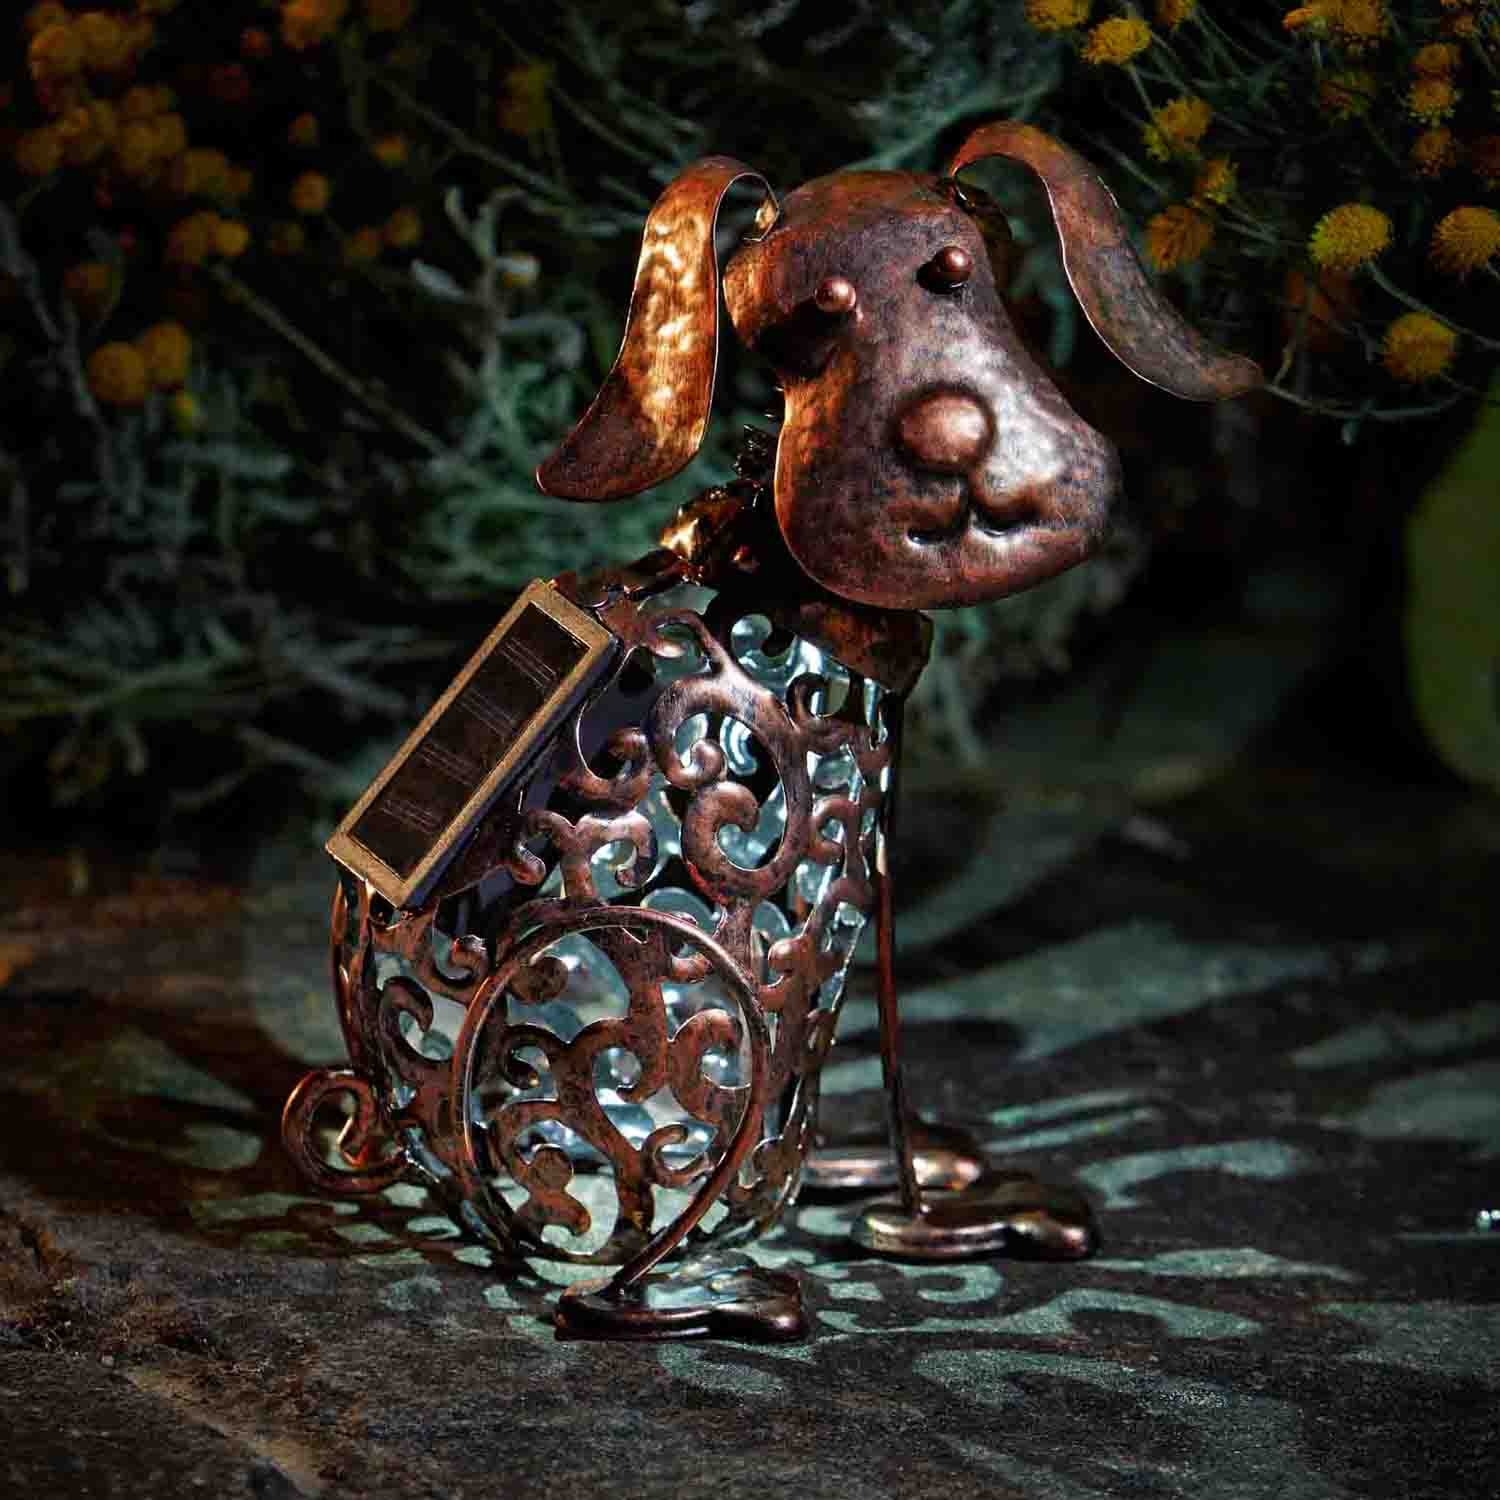 Smart Garden Solar Silhouette Dog Garden Ornament Leekes